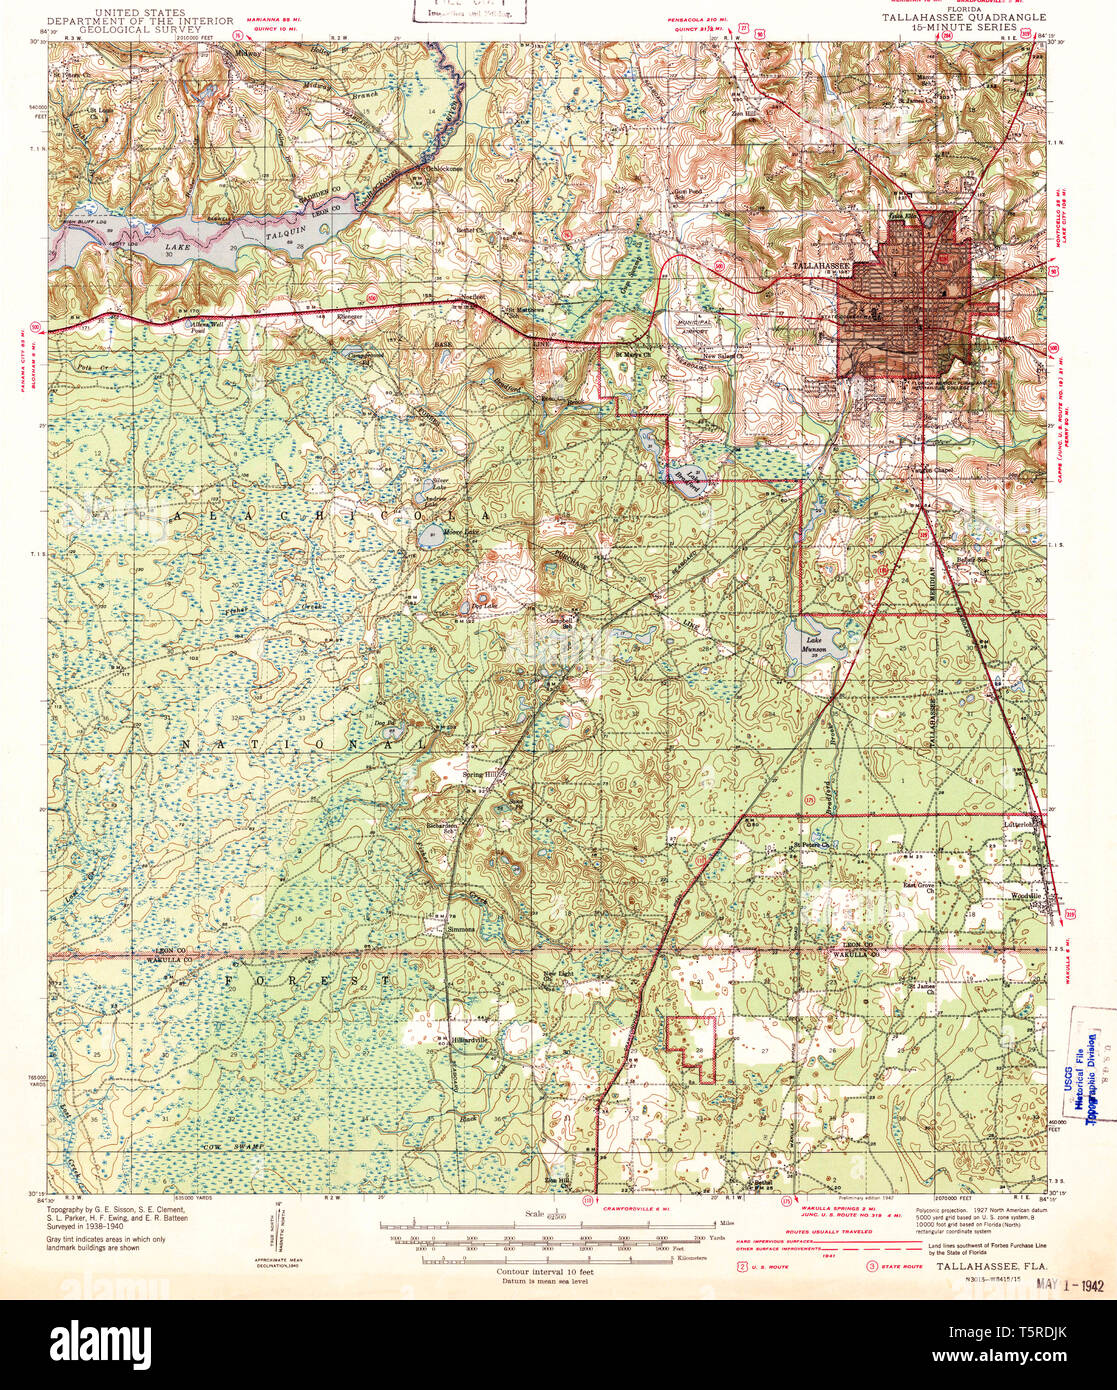 USGS TOPO Map Florida FL Tallahee 348765 1942 62500 ... Get Map Of Fl on map of florida beaches, map of wi, map of georgia, map of montana, map of fort lauderdale, map of tennessee, map of florida panhandle, map of flo, map of tampa, map of tx, map of ms, map of kentucky, map of florida beach resorts, map of east coast of florida, map of ak, map of florida cities, map of michigan, map of volusia county florida, map of state, map of florida gulf coast,